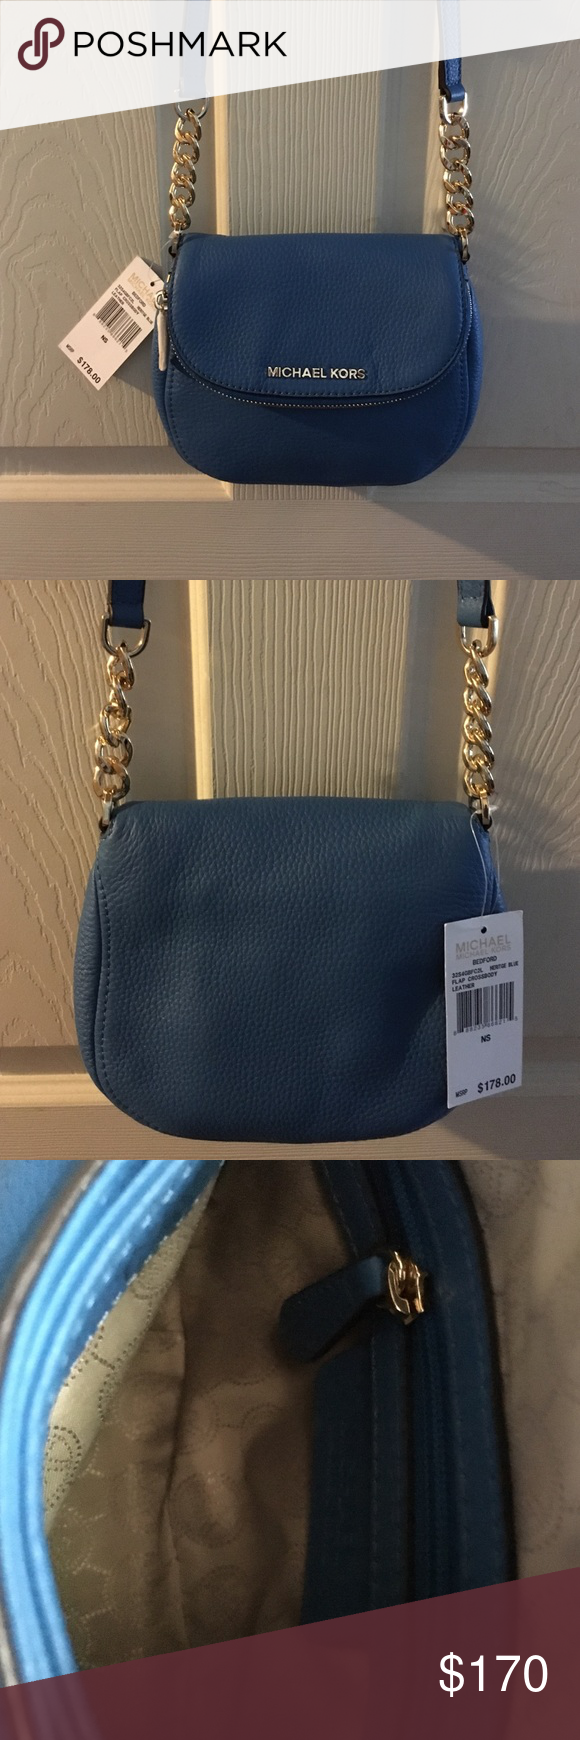 MICHAEL MICHAEL KORS  CROSS BODY🌸 MICHAEL MICHAEL KORS BEDFORD CROSS  BODY BAG. Heritage Blue. 8 X 7 X 2.5 NWT MICHAEL Michael Kors Bags Crossbody Bags